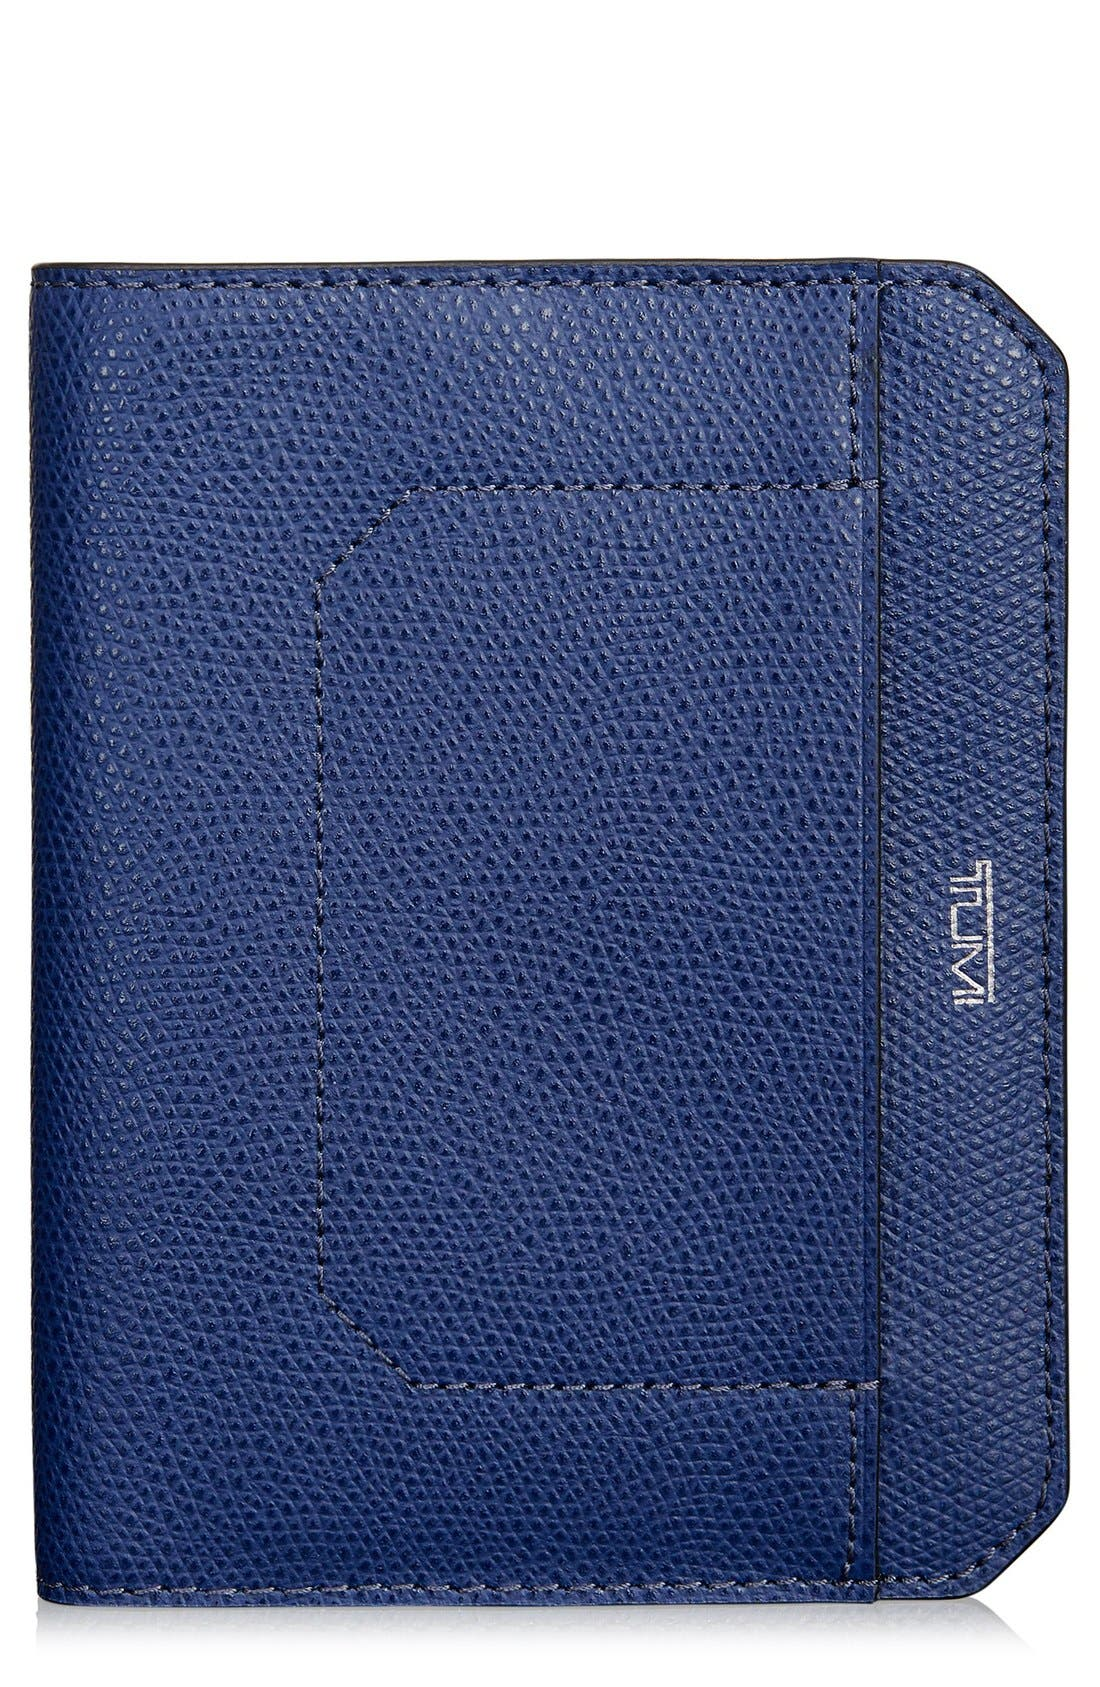 Leather Passport Cover,                         Main,                         color, 400